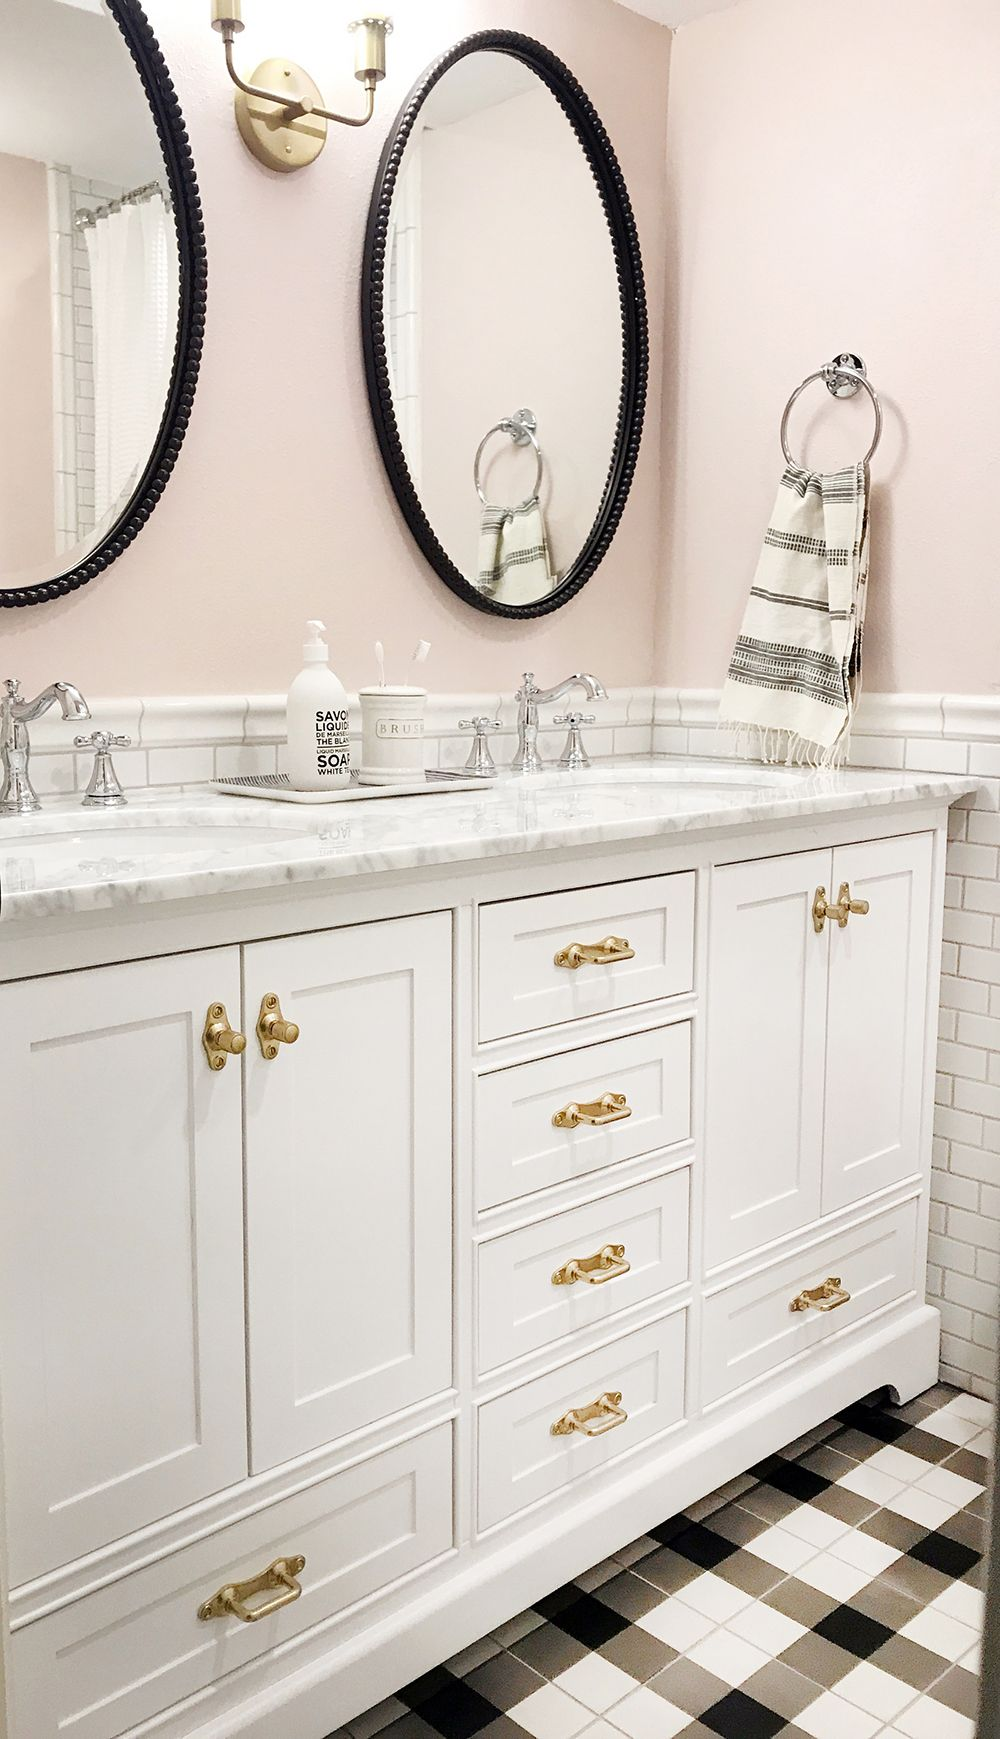 Before And After: The Girls' Bathroom Is Finished